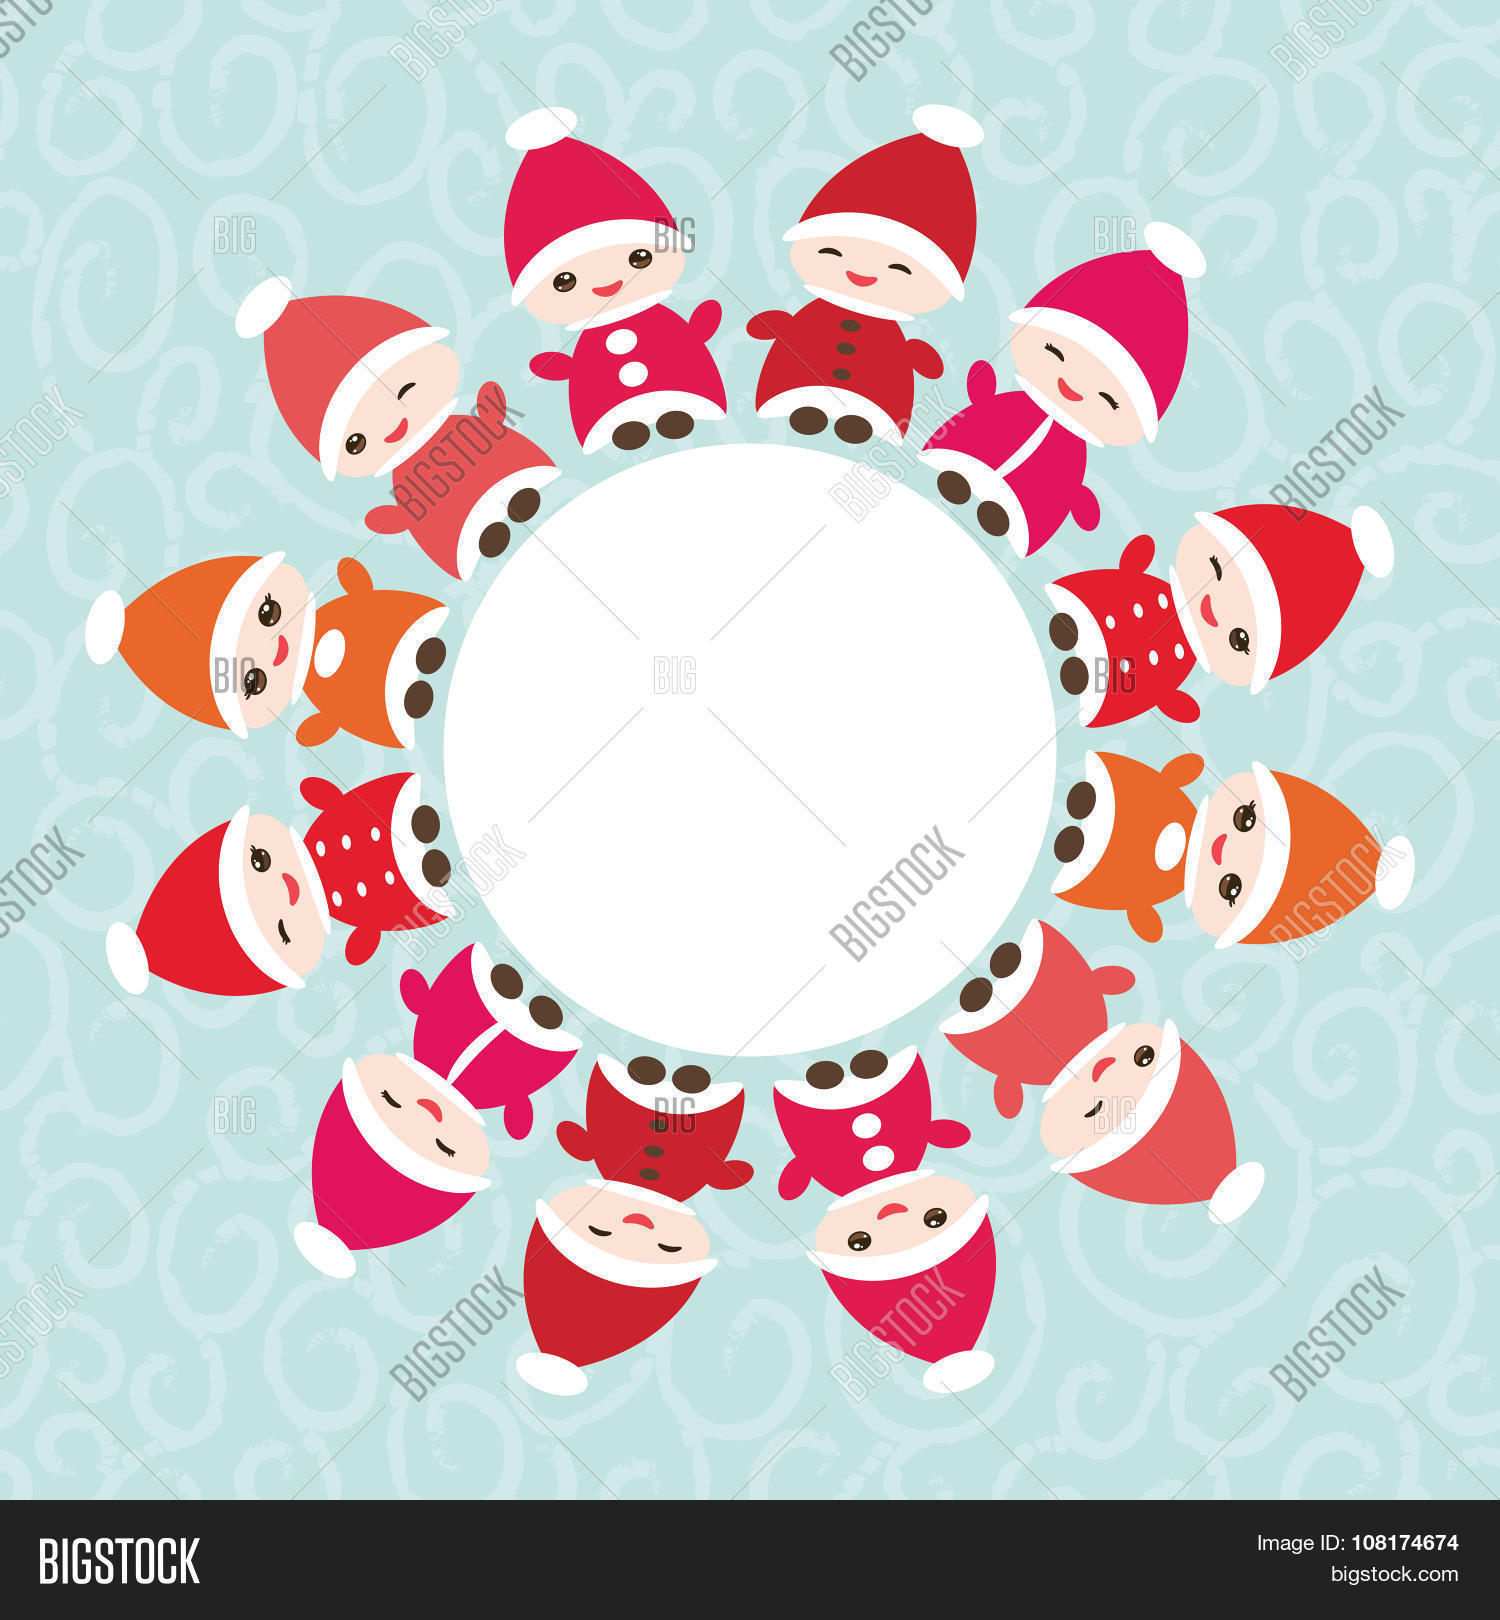 Happy New Year Card Vector & Photo (Free Trial) | Bigstock